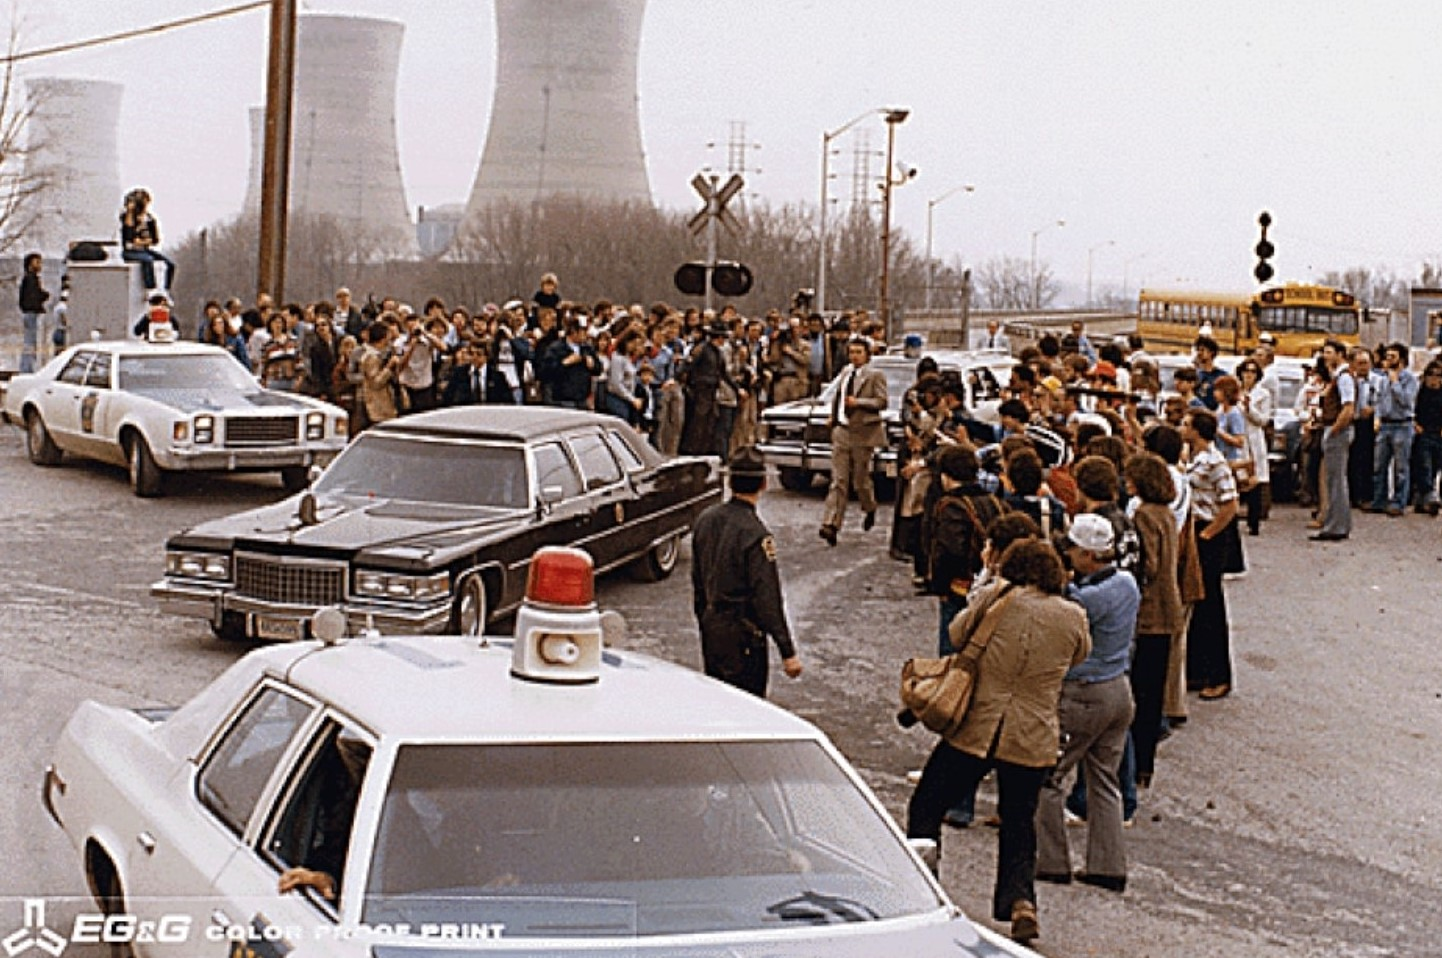 Remembering Three Mile Island 40 Years After the Meltdown